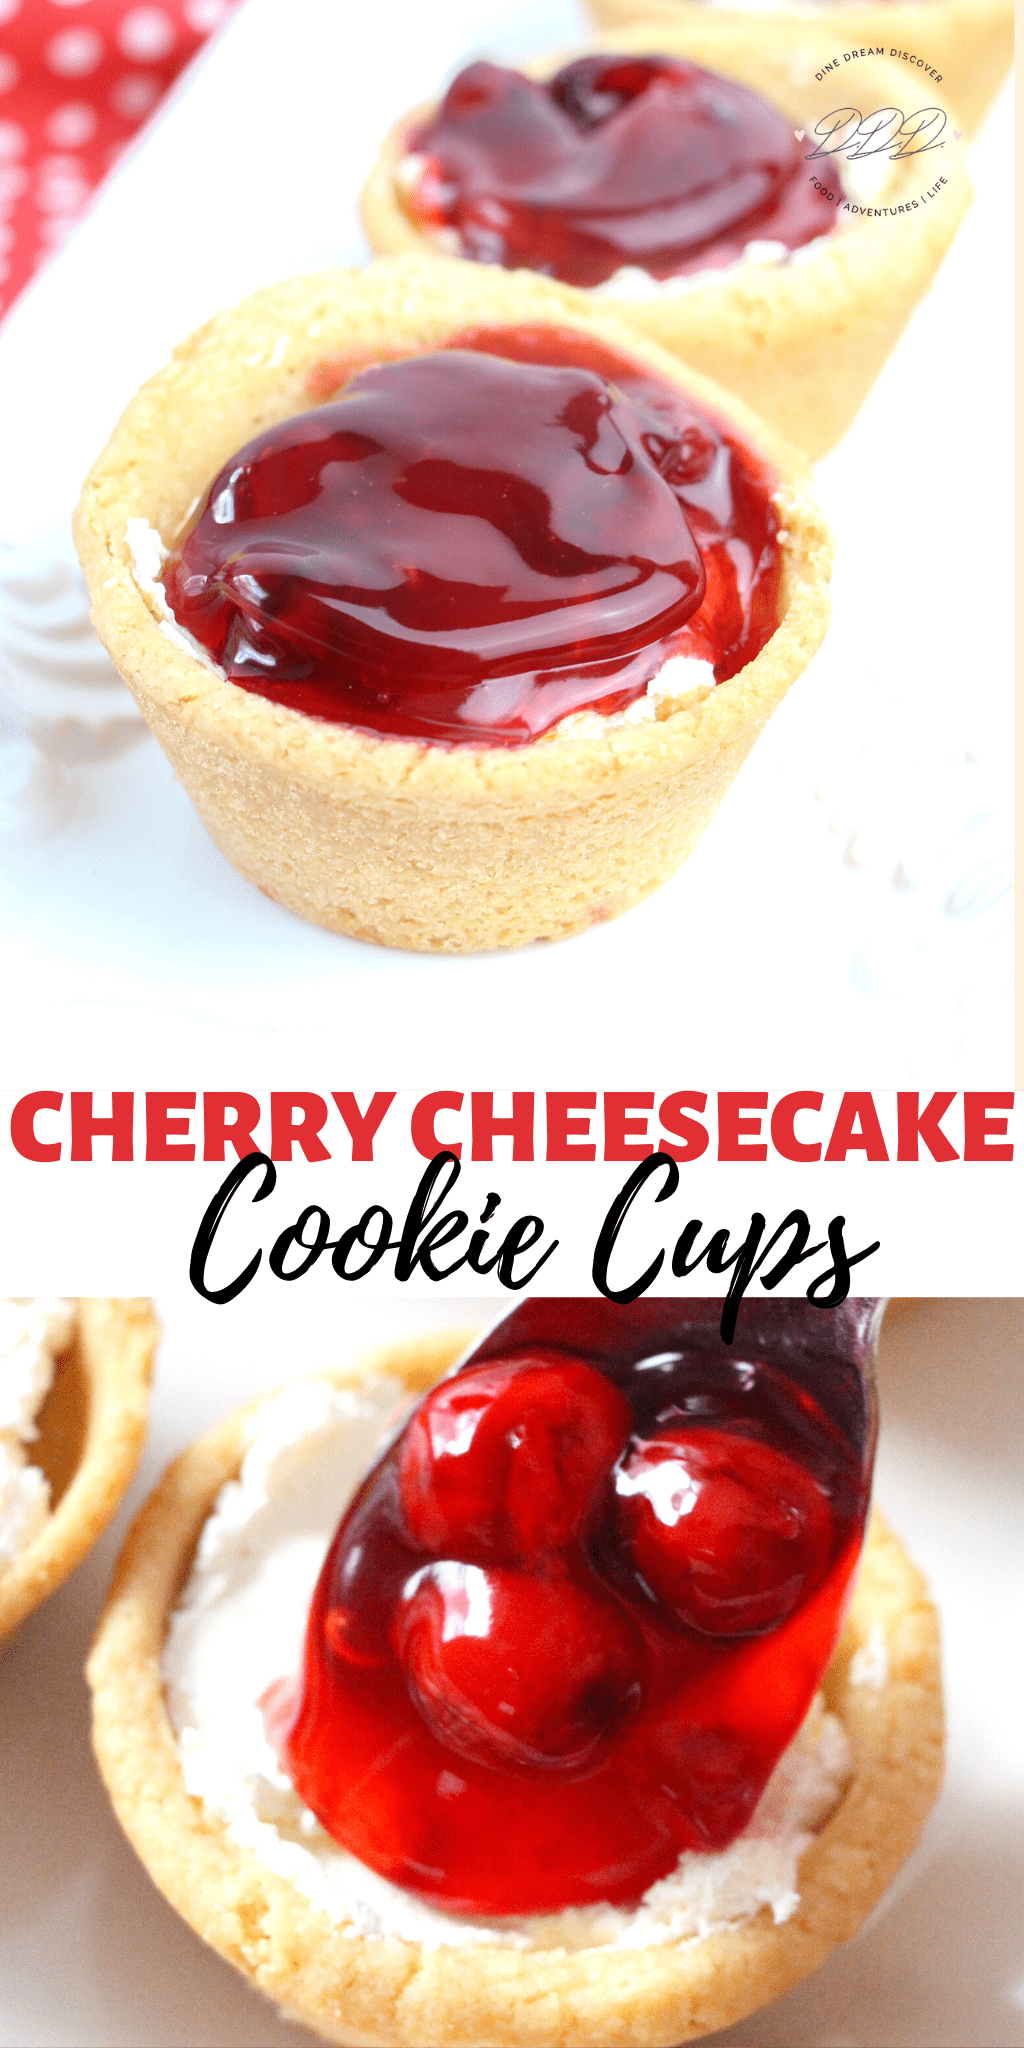 Cherry Cheesecake Cookie Cups Recipe